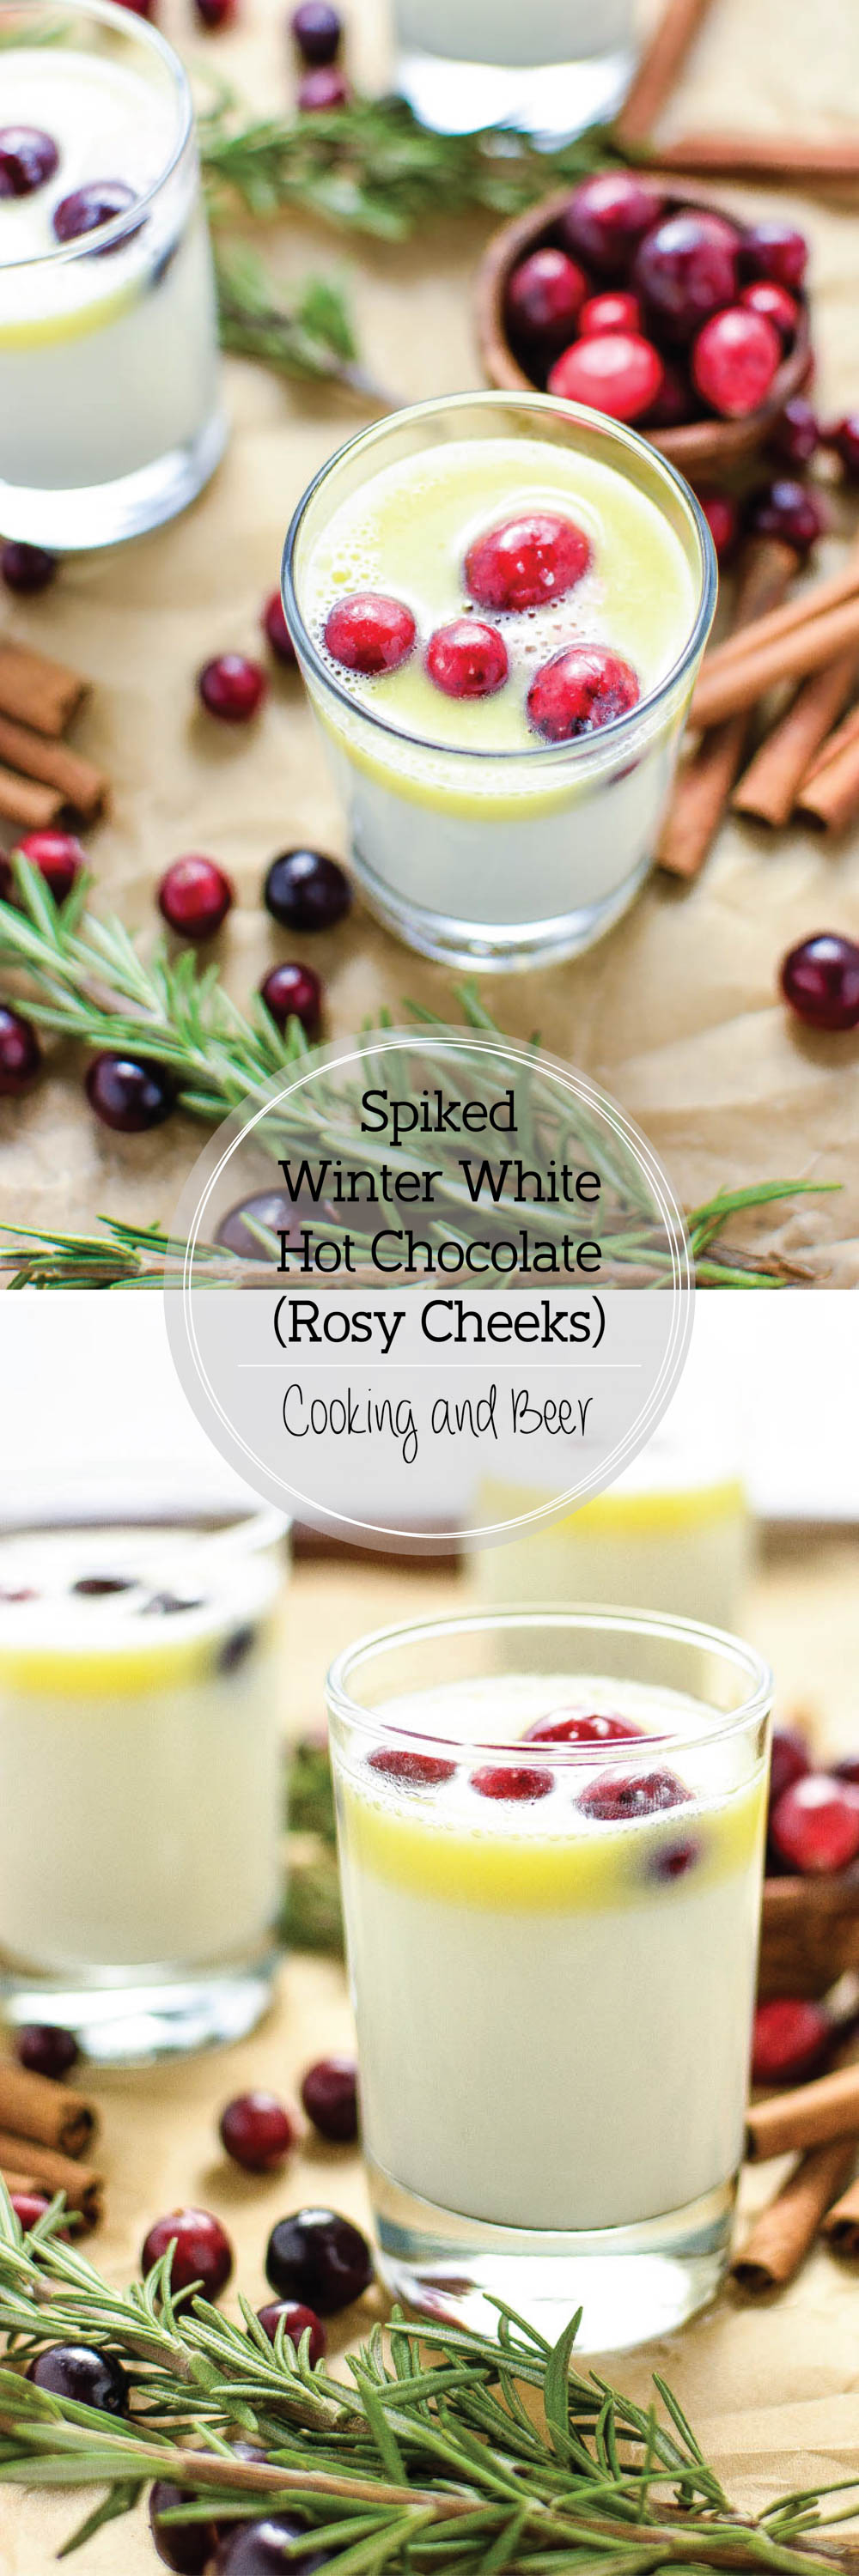 Rosy Cheek (Spiked Winter White Hot Chocolate): a nutty and buttery eggnog-like drink that's perfect for the holidays!